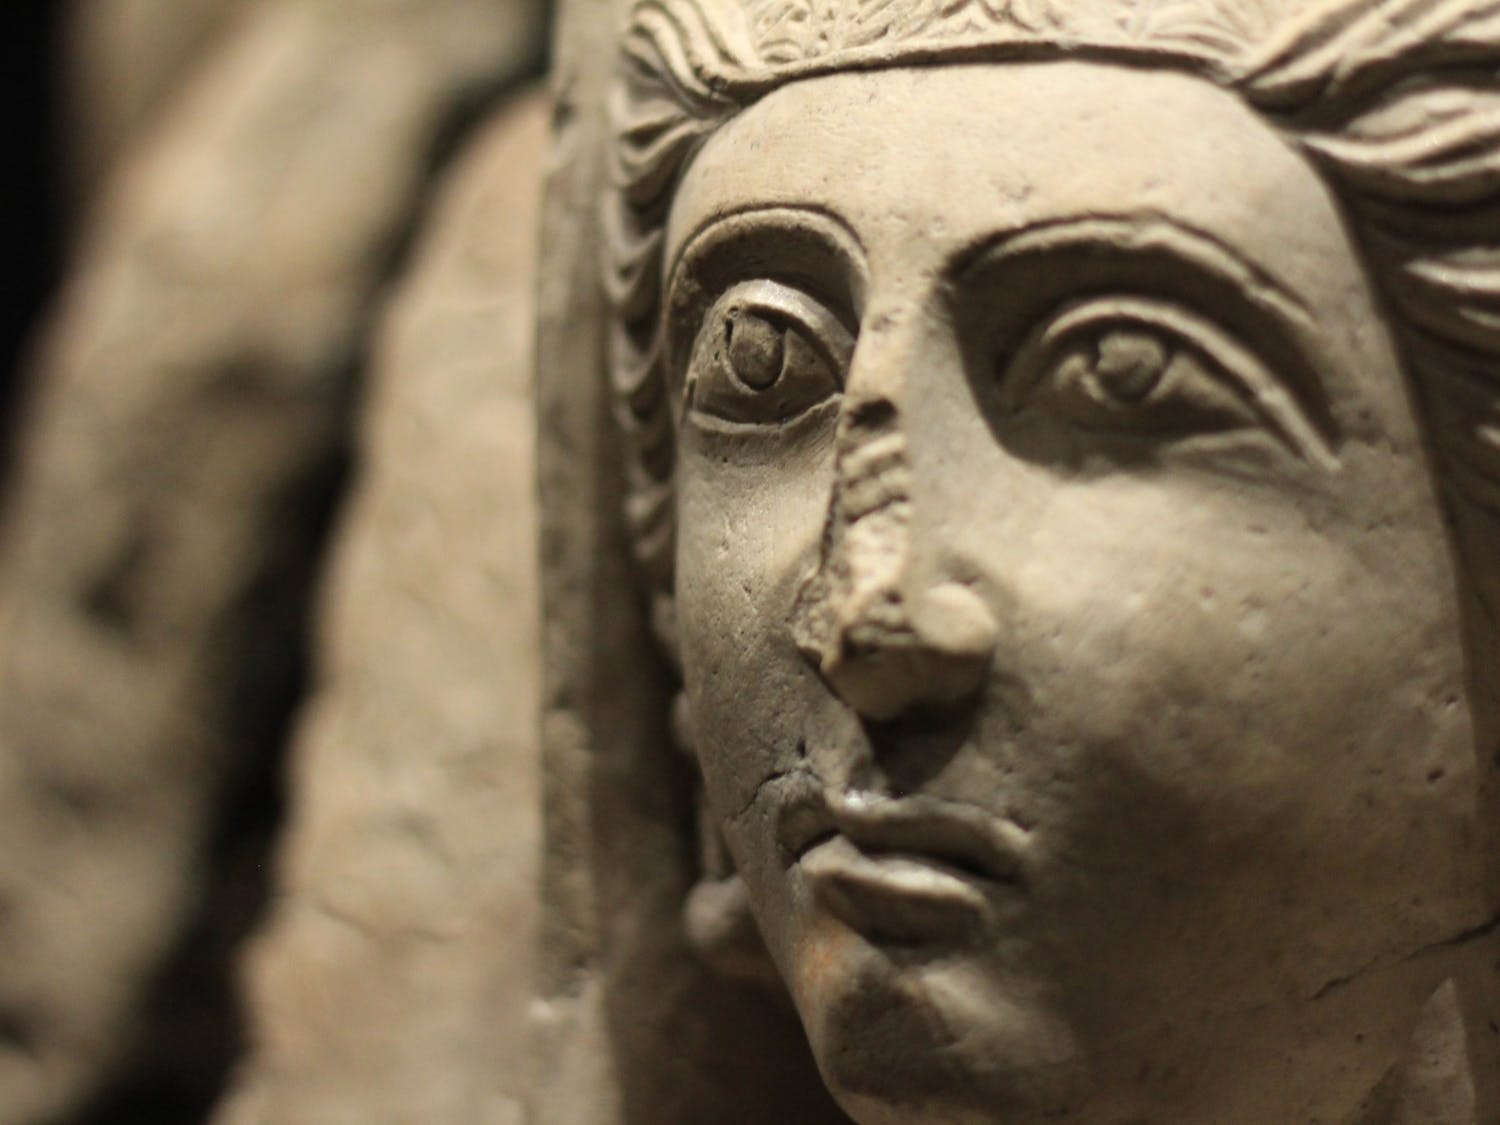 This Greco influenced stone bust likely stood as a guardian for the deceased to help accompany them into the next life.